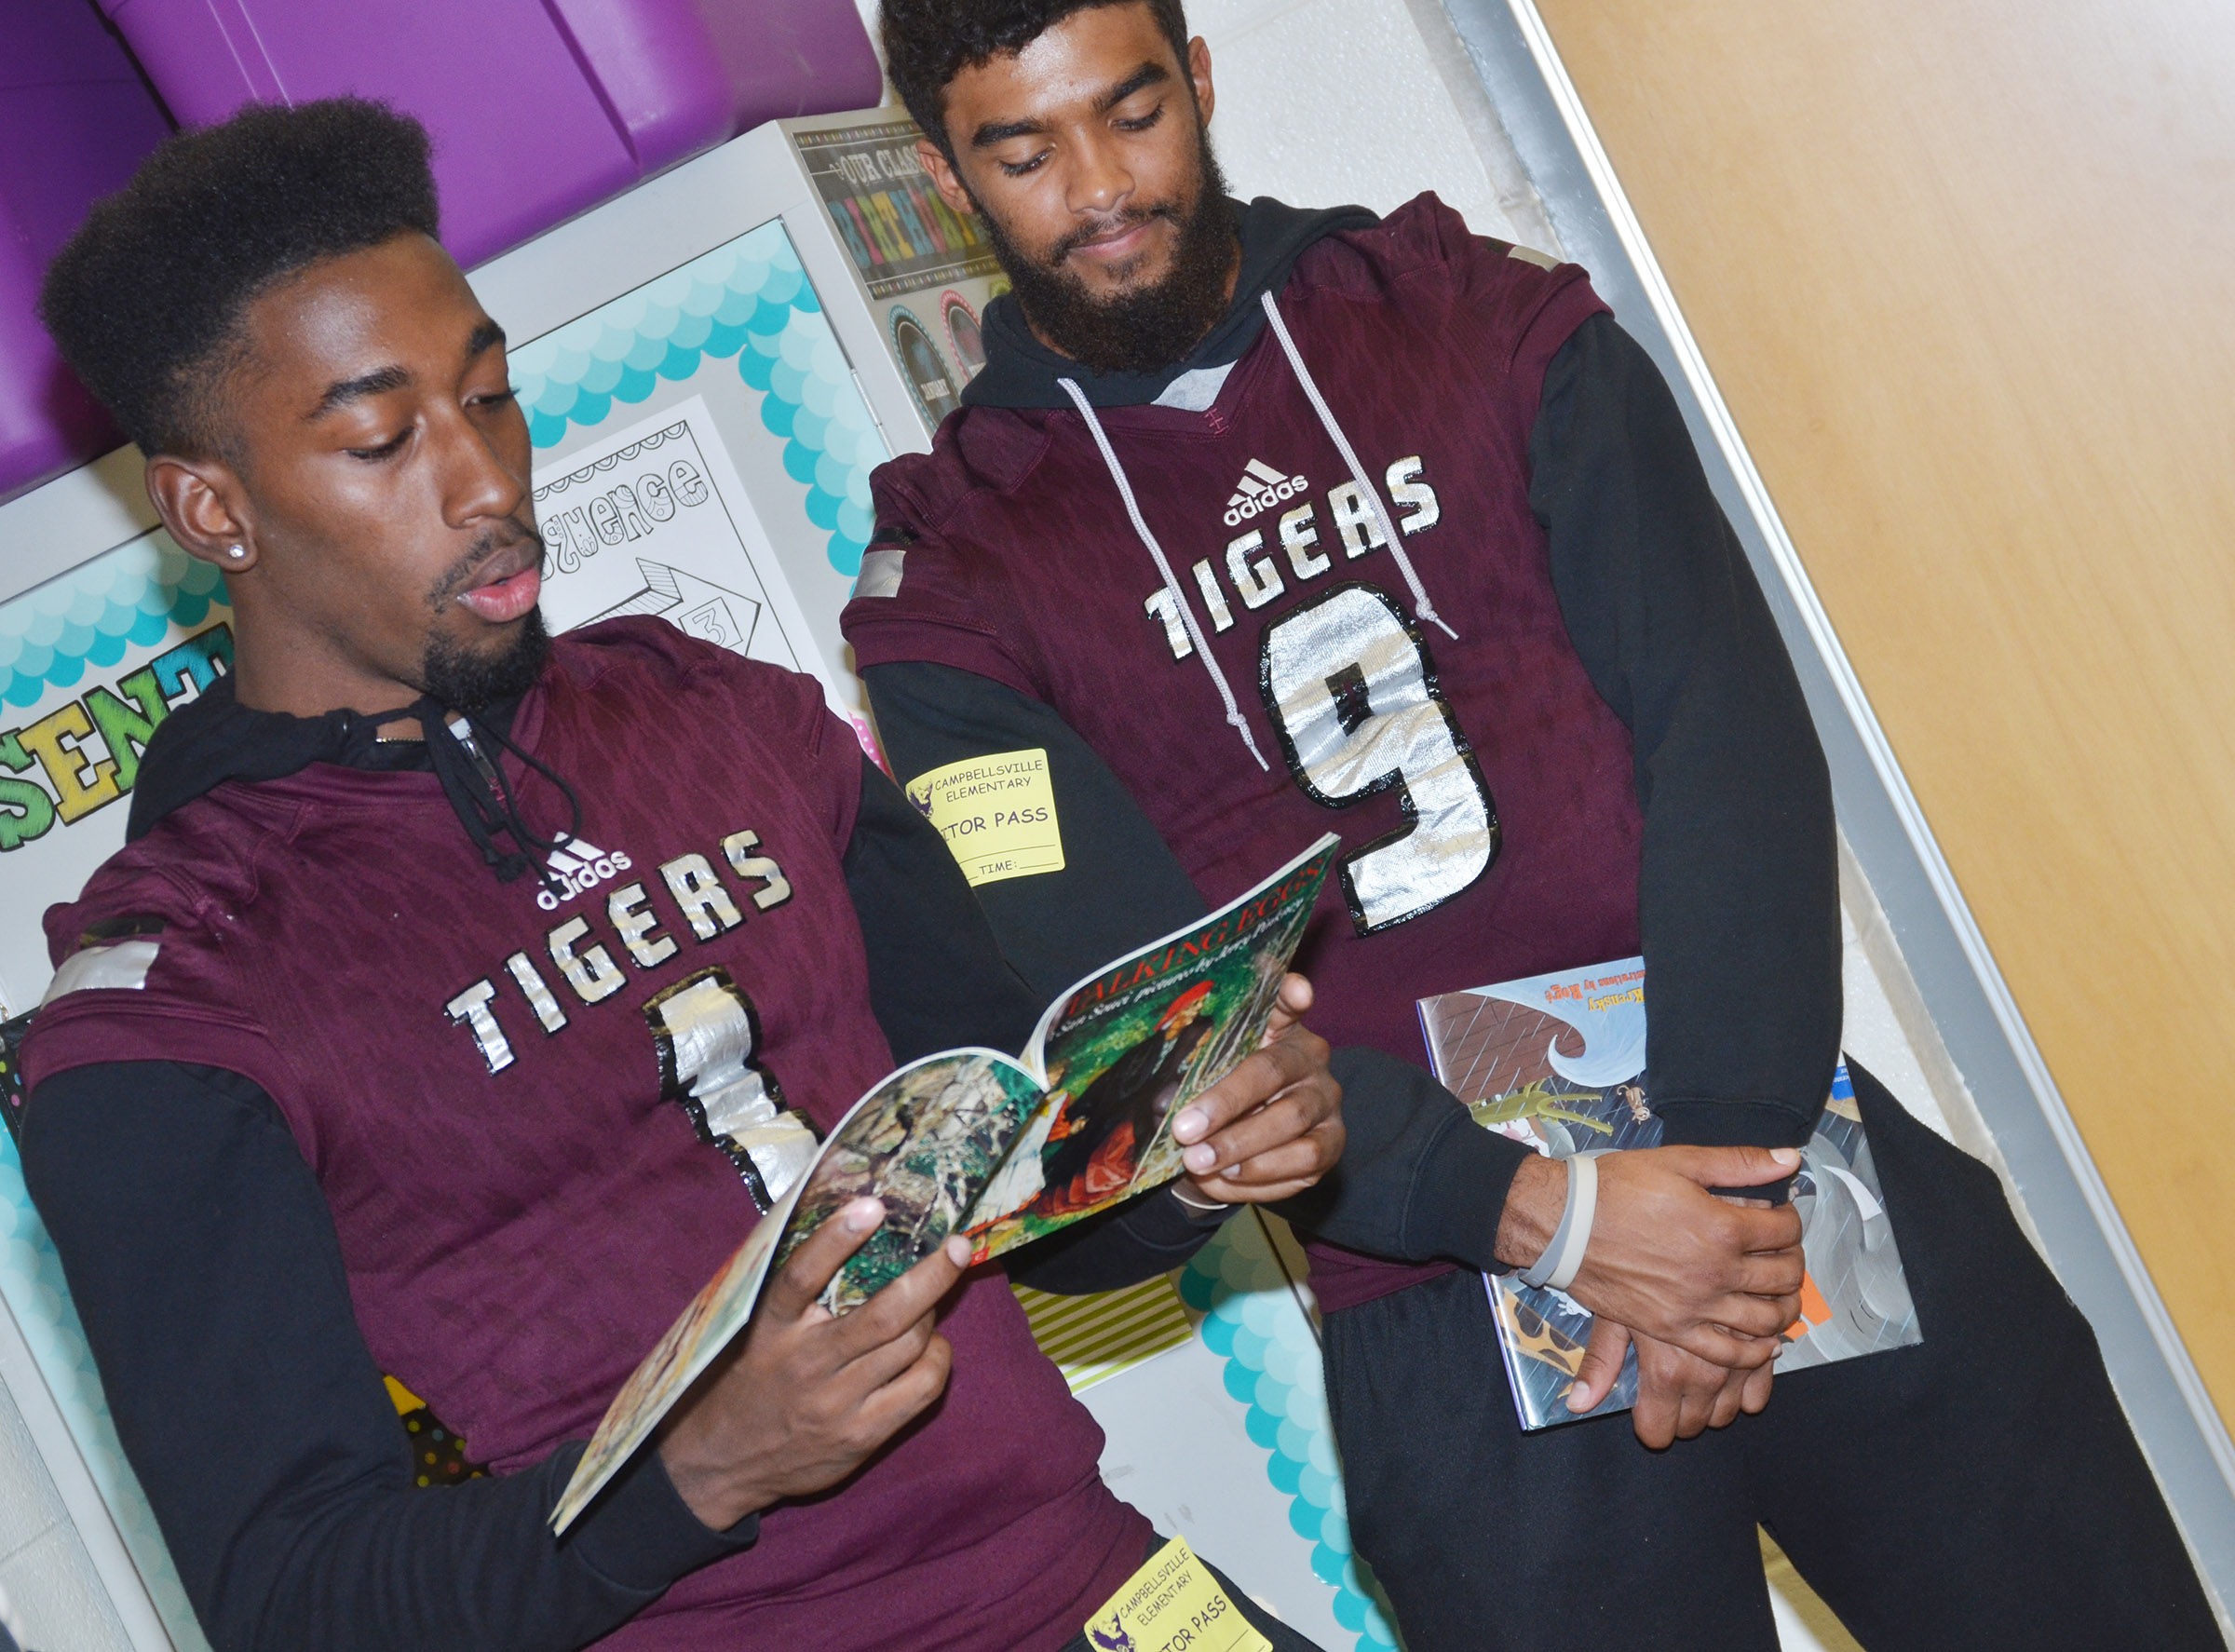 CU player Kendon Young reads to CES fifth-graders. Young graduated from Campbellsville High School in 2016. At right is CU player Brayden Russell.